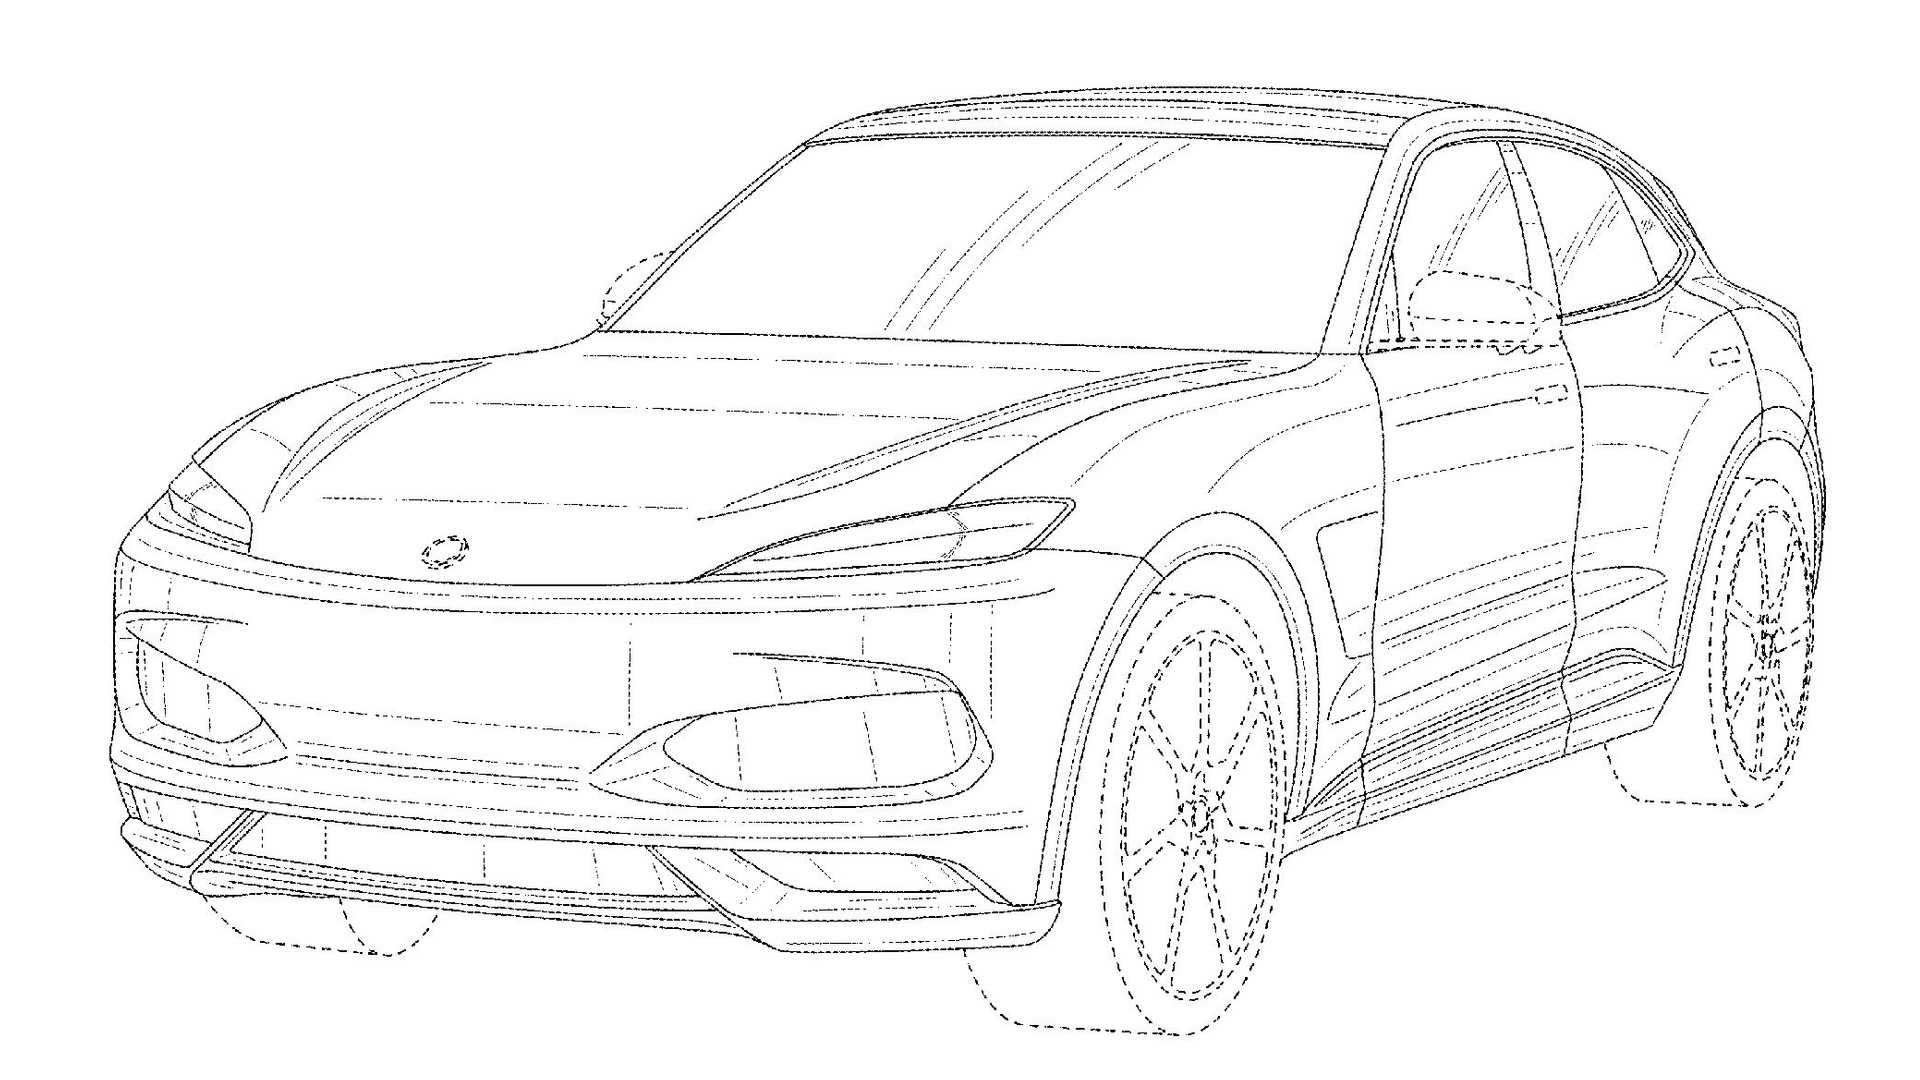 Leaked Patent Drawings Reveal Karma's Upcoming Electric SUV